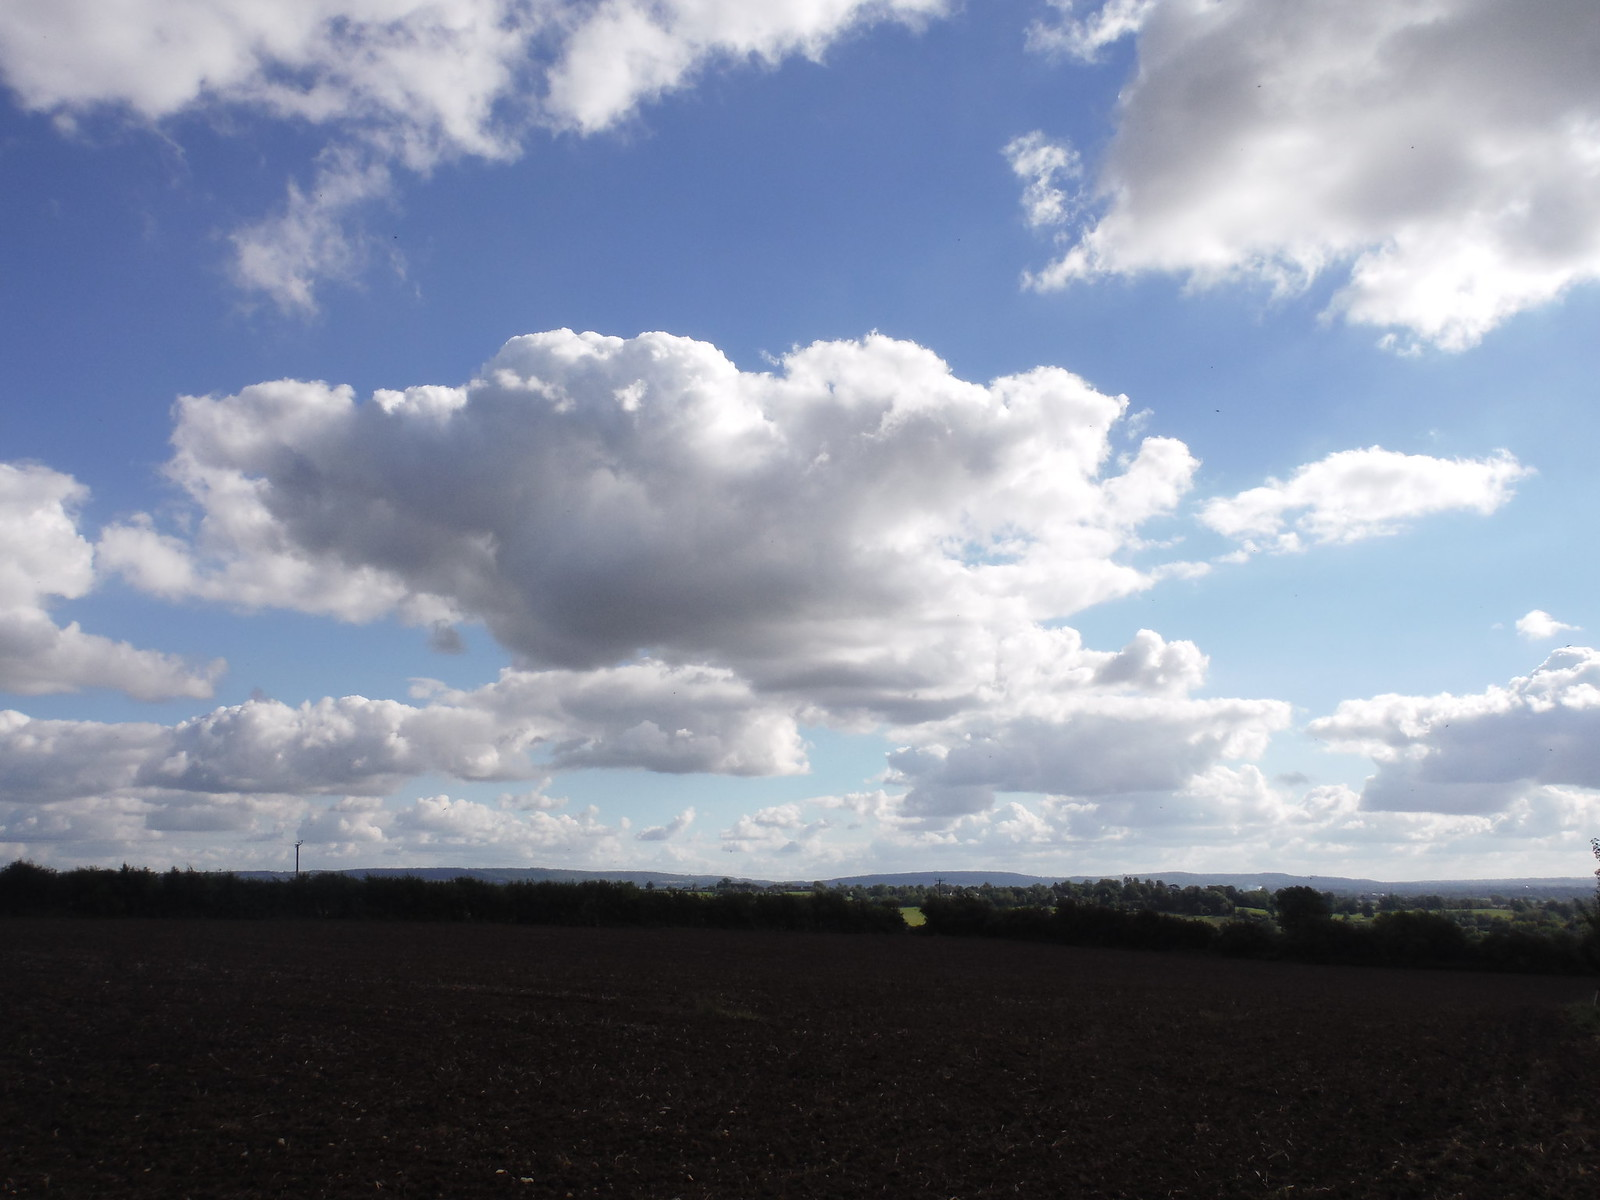 Cloudscape over large arable field, towards Aston Abbotts SWC Walk 194 Aylesbury Vale Parkway to Aylesbury